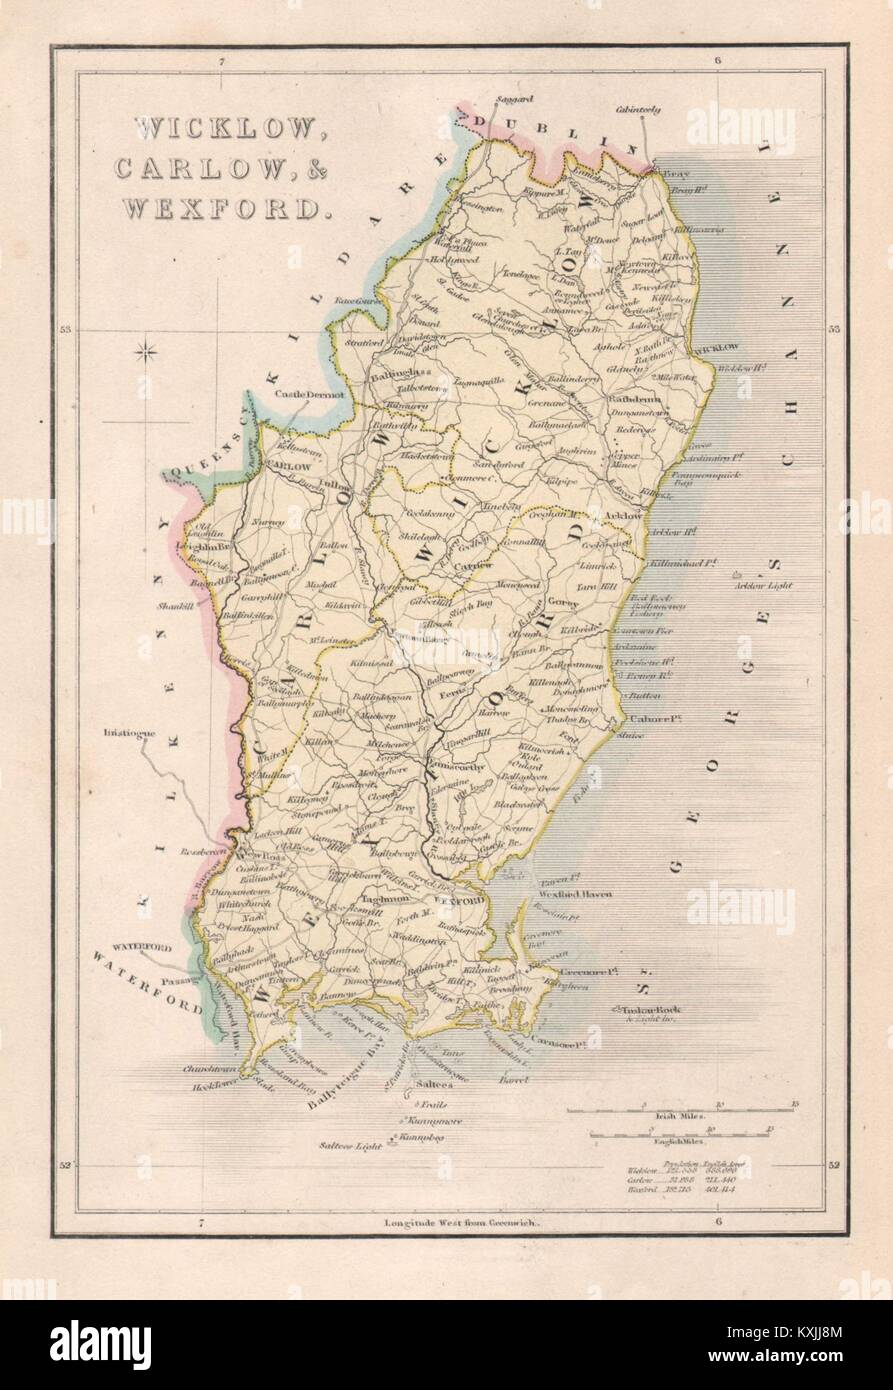 Map Of Wexford County Ireland.Antique Wicklow Carlow Wexford County Map By Alfred Adlard Stock